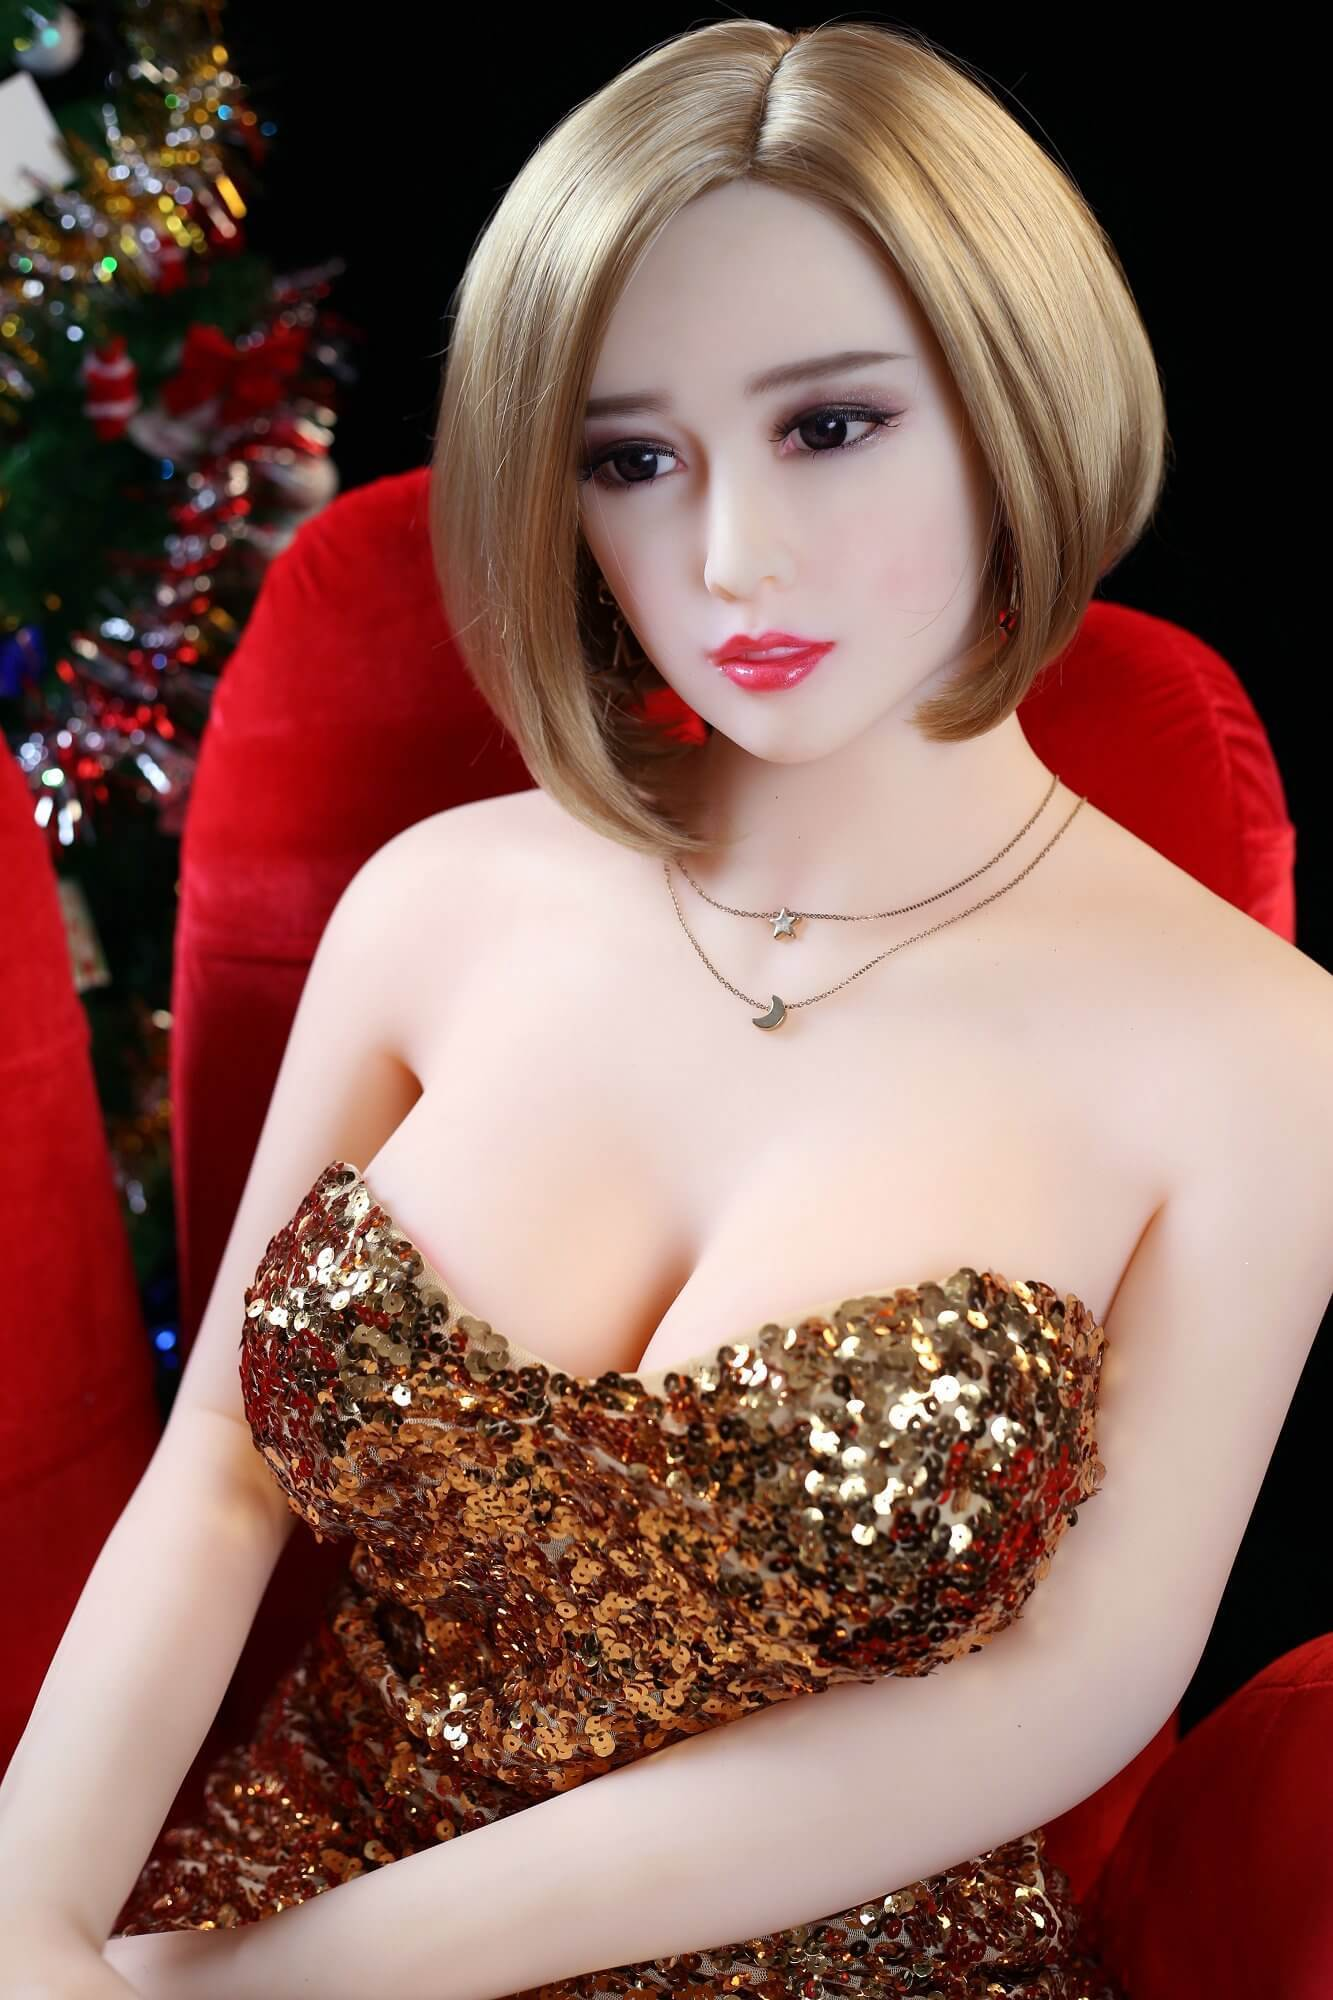 165 cm 5.41ft Lifelike Real Sex Doll With 3 Entries E Cup Adult Life Size Love Doll Chloe-sexdollslab.com